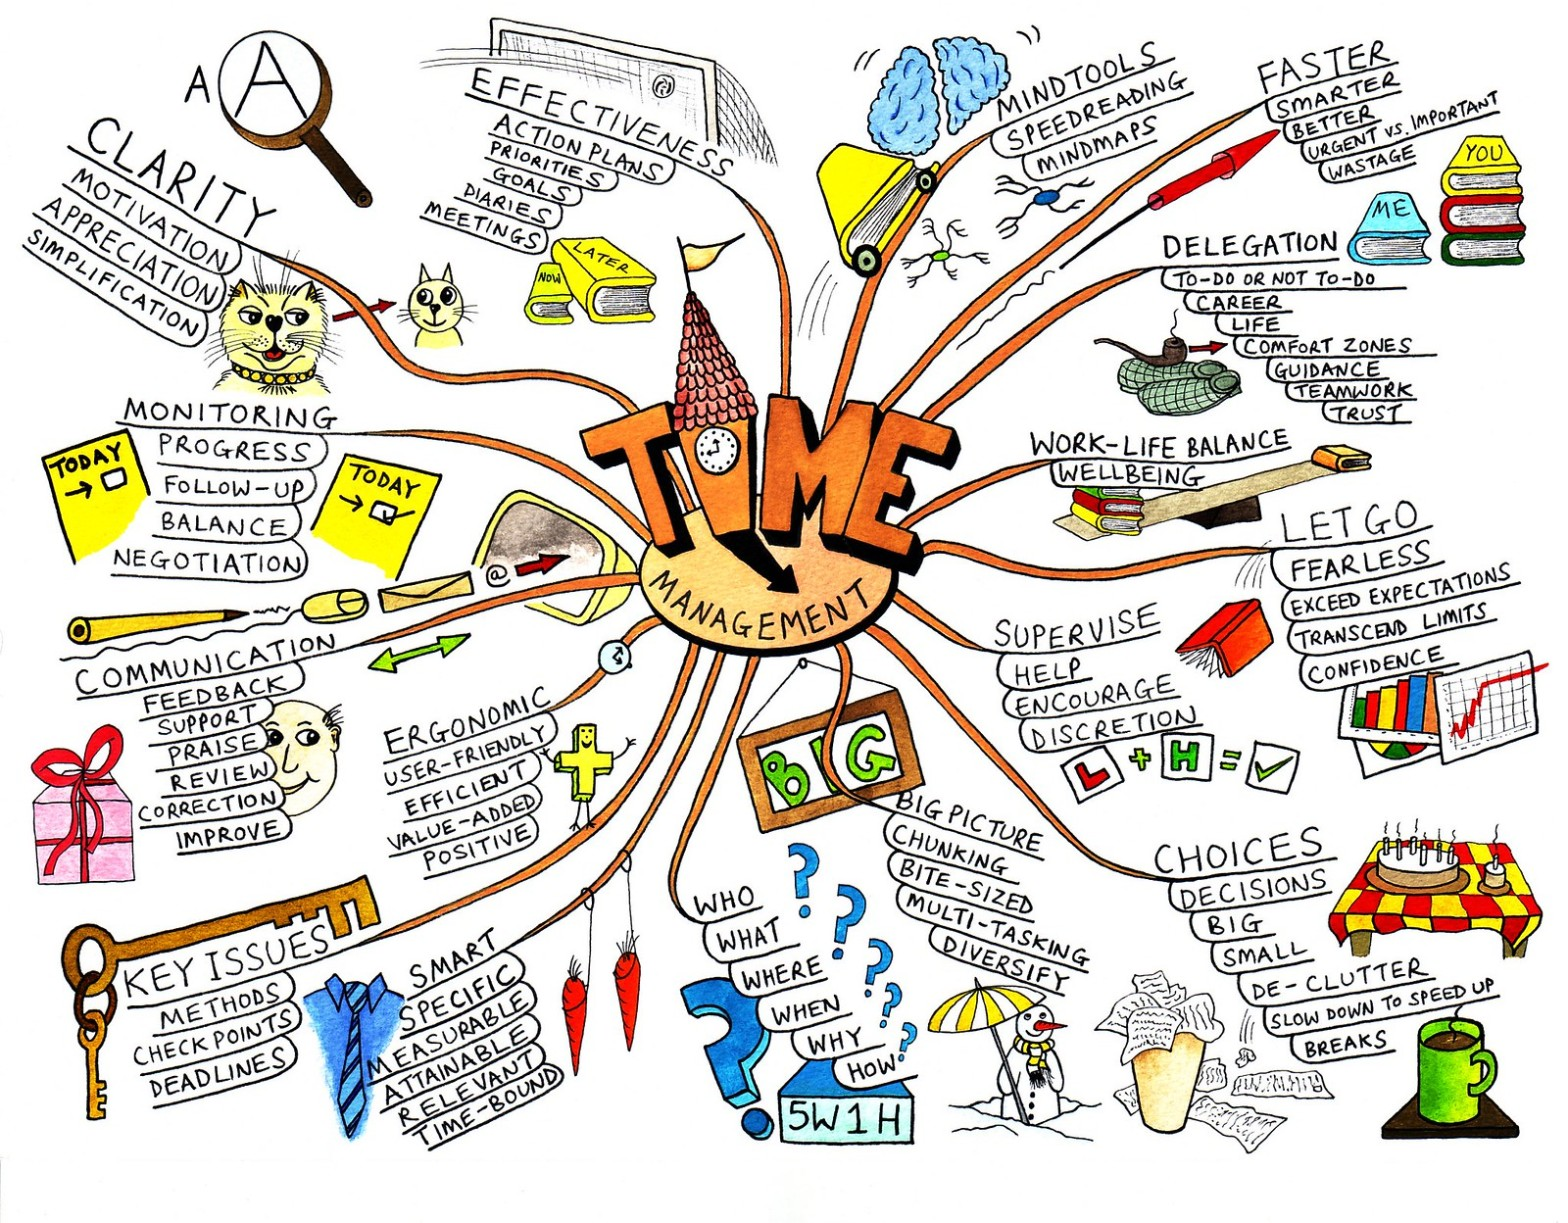 Hand drawn image with the word time in the middle and related, listed ideas written around the word time